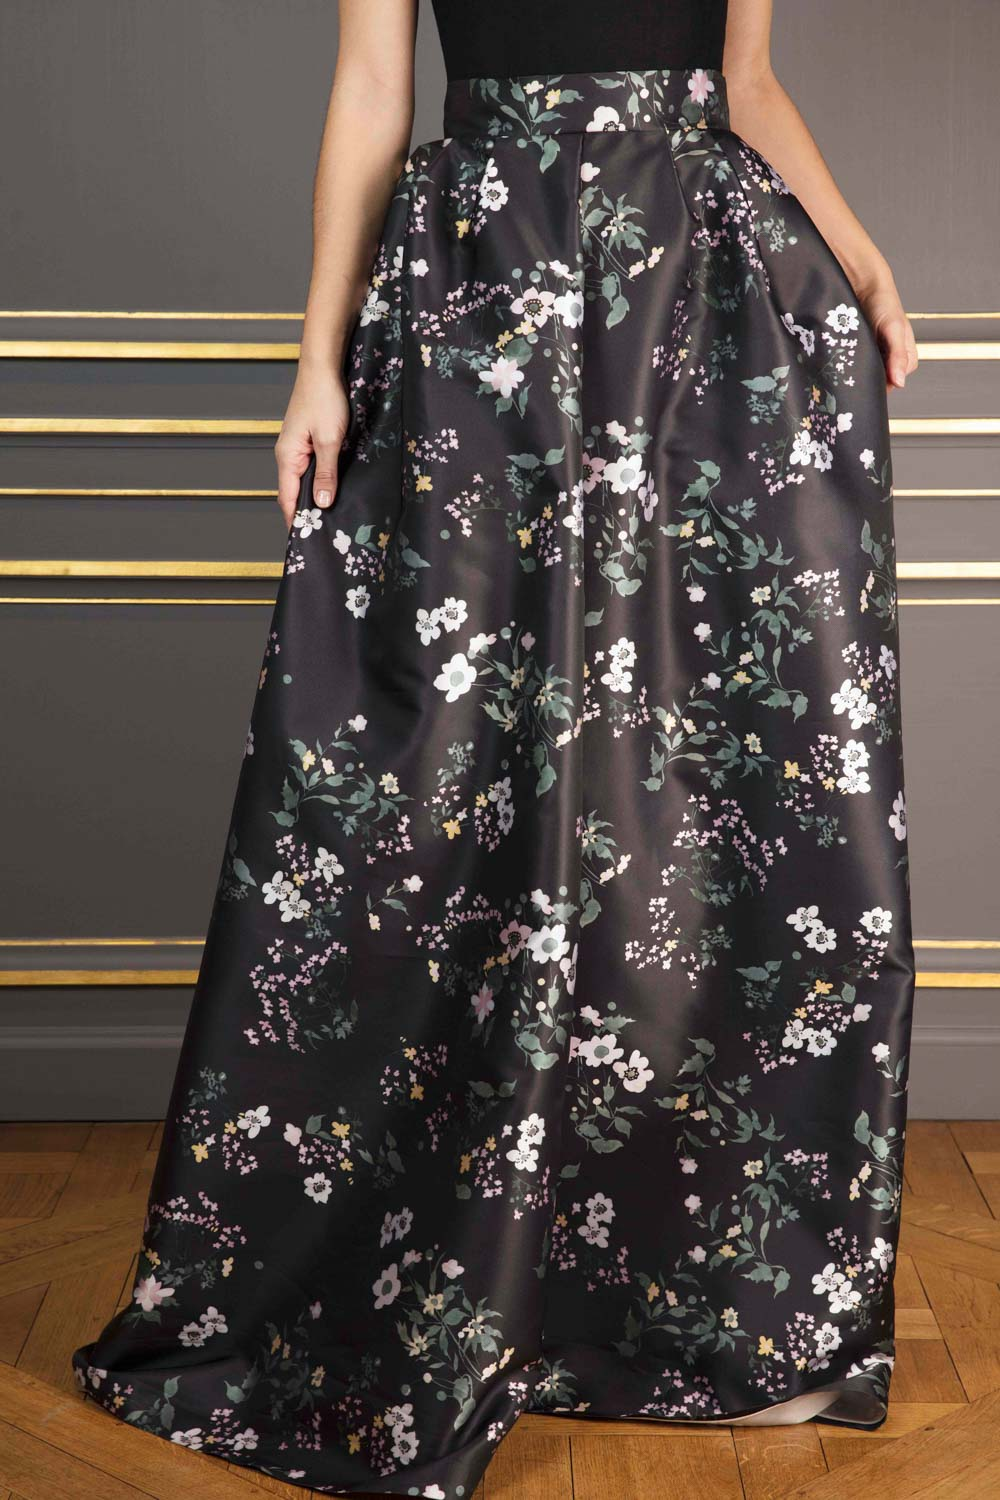 Washed-black floral-print duchesse satin A-line maxi skirt